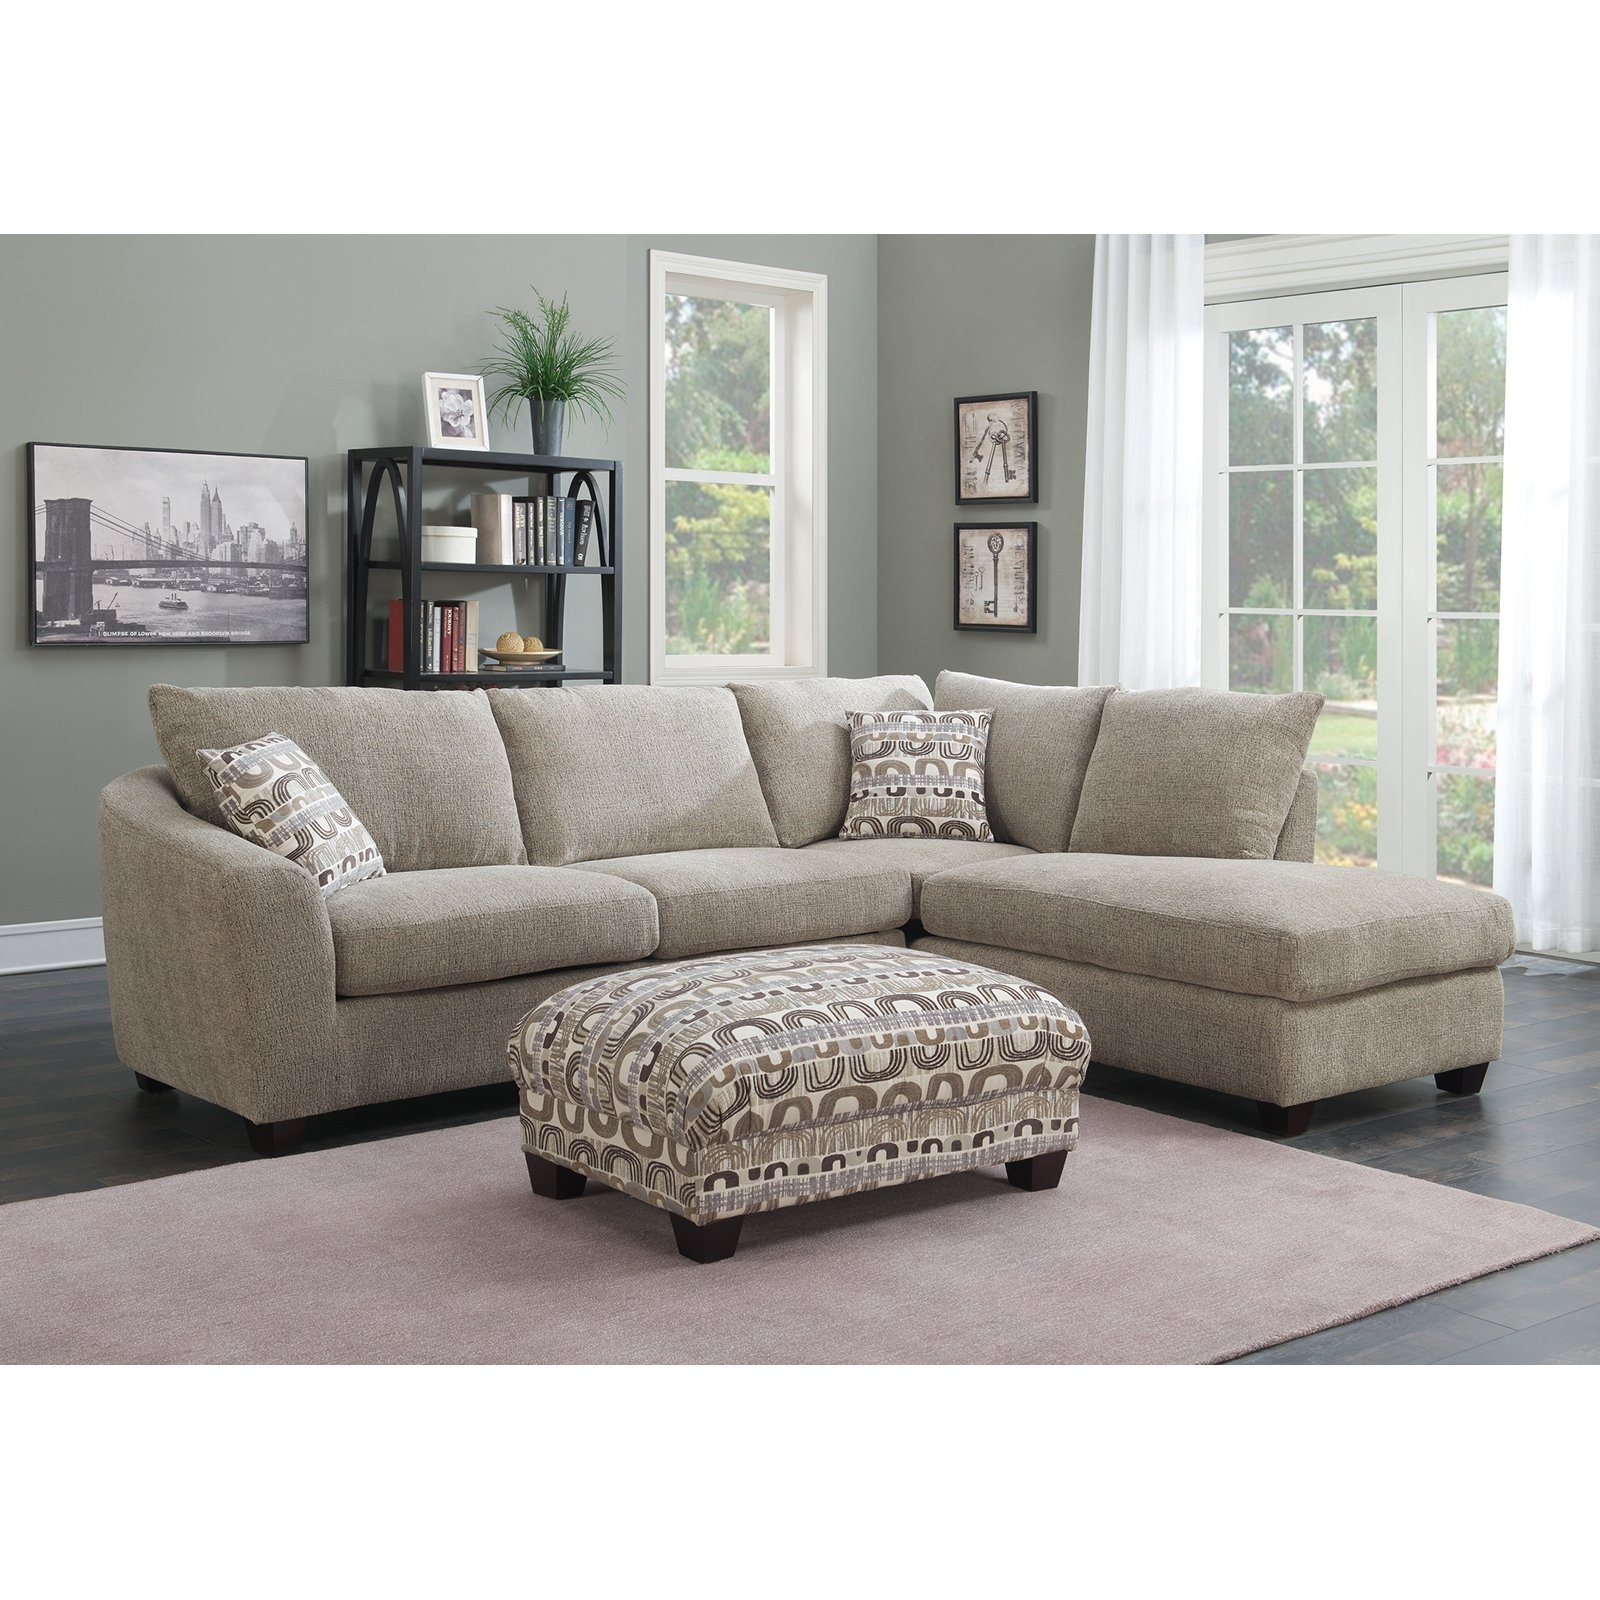 Emerald Home Urbana Piece Sectional Sofa With Chaise Couch Double Inside Kerri 2 Piece Sectionals With Laf Chaise (Image 5 of 25)